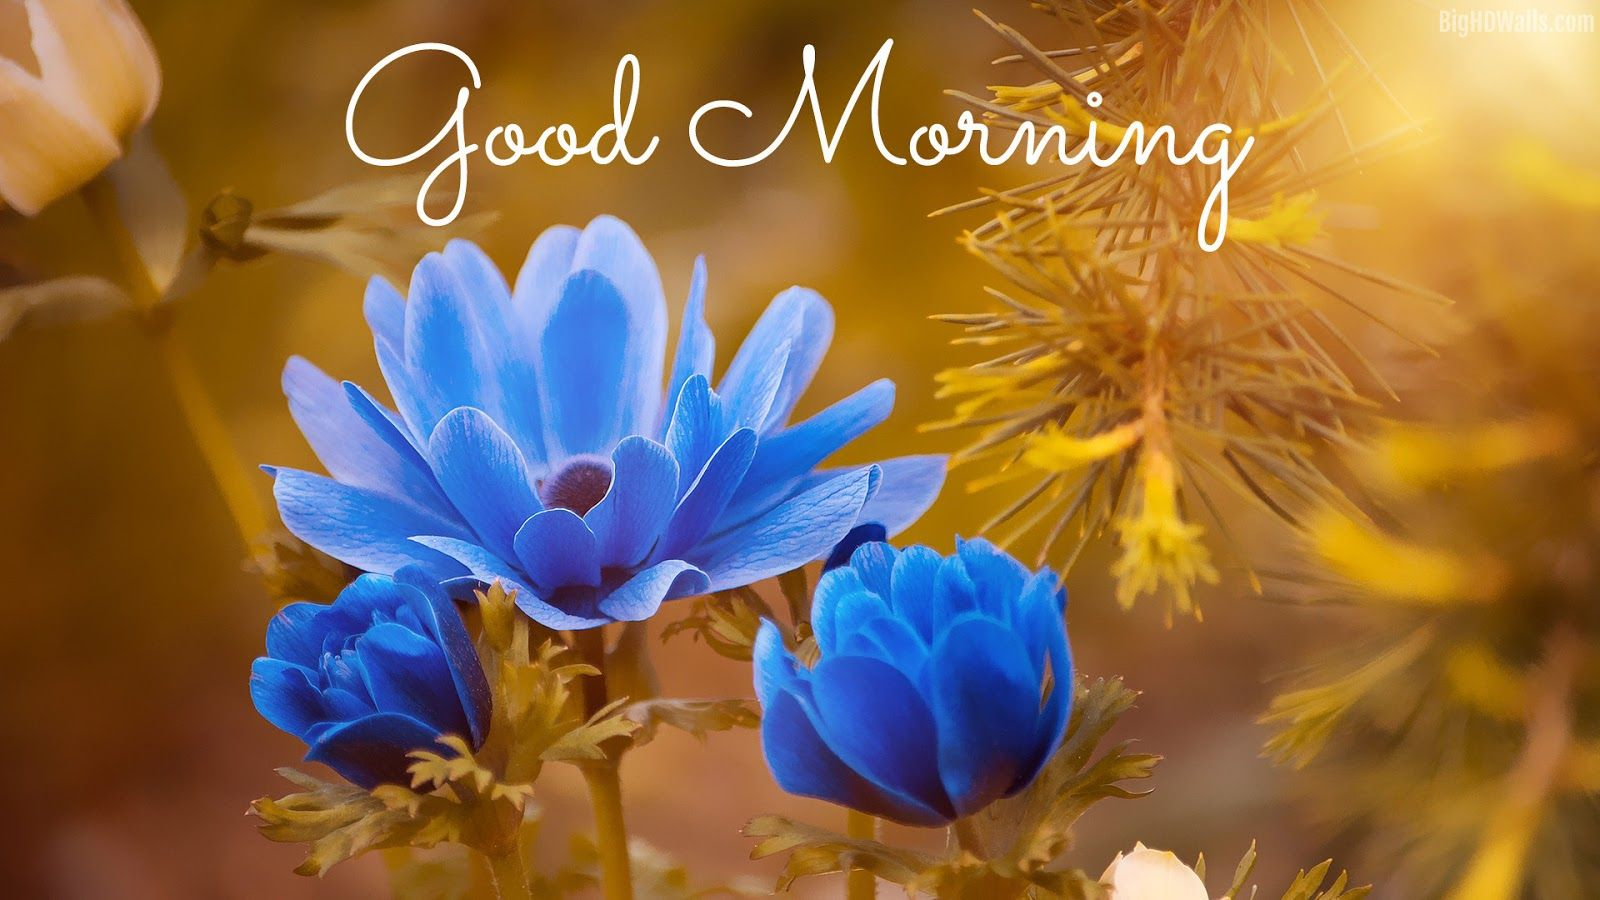 Good Morning Images With Flowers Hd Funny Good Morning Images